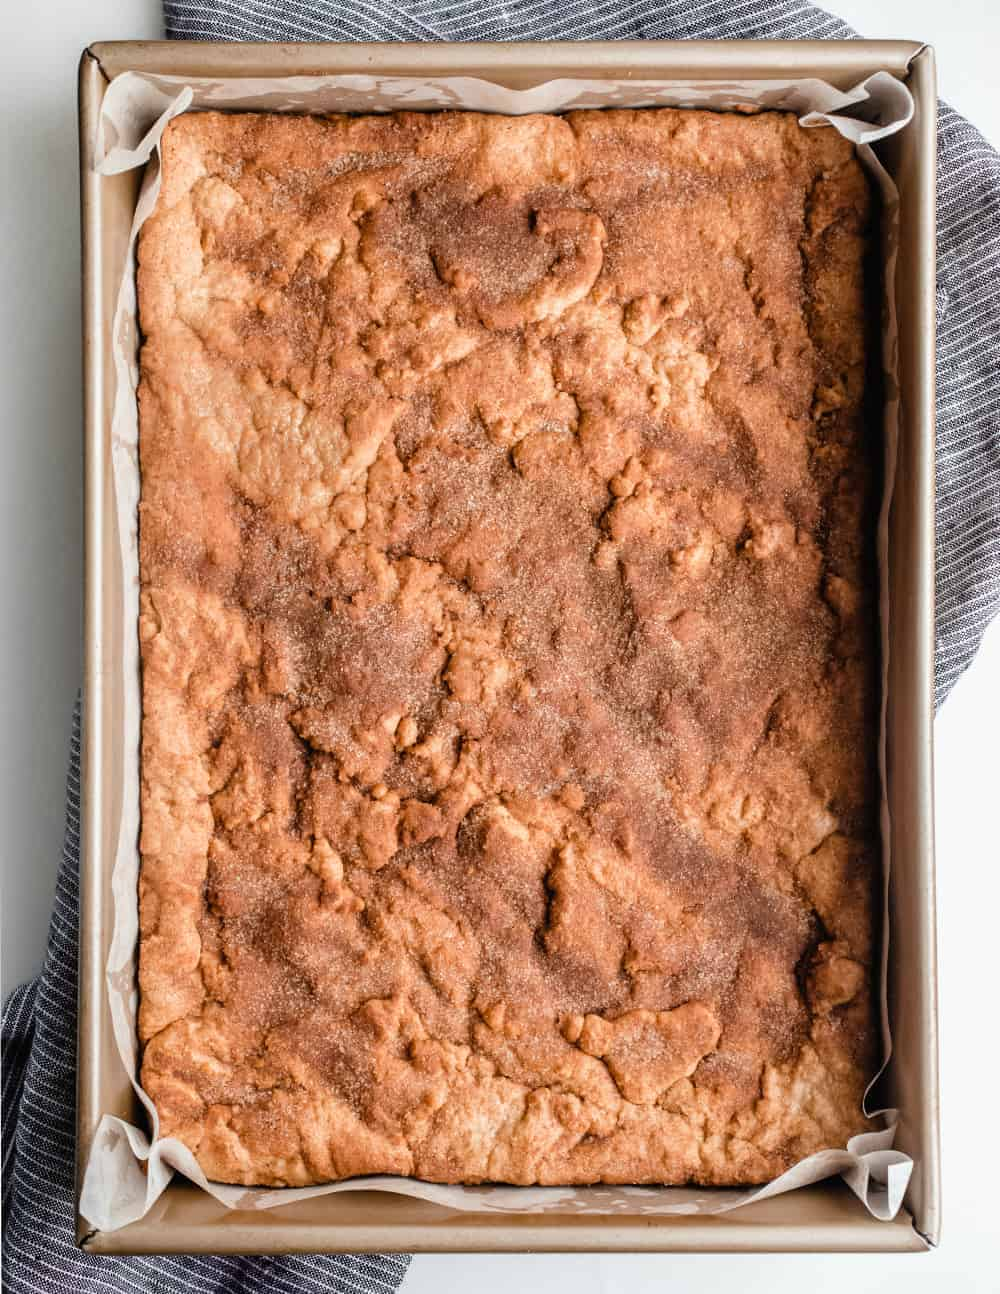 Freshly-baked snickerdoodle blondies in a parchment-lined pan, ready to be cut